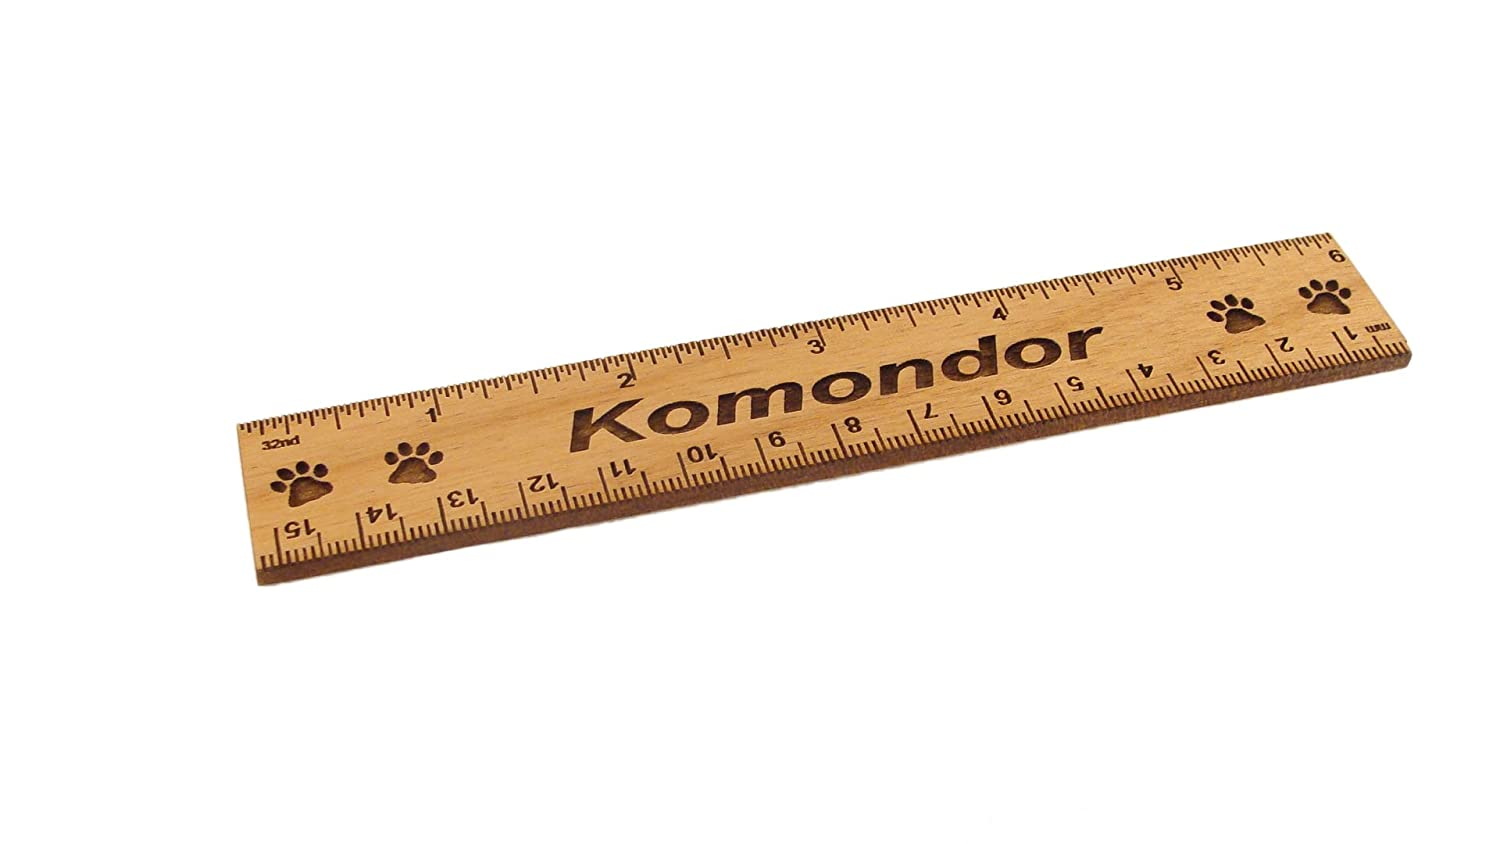 Komondor 6 Inch Alder Wood Ruler Gulf Coast Laser Graphics